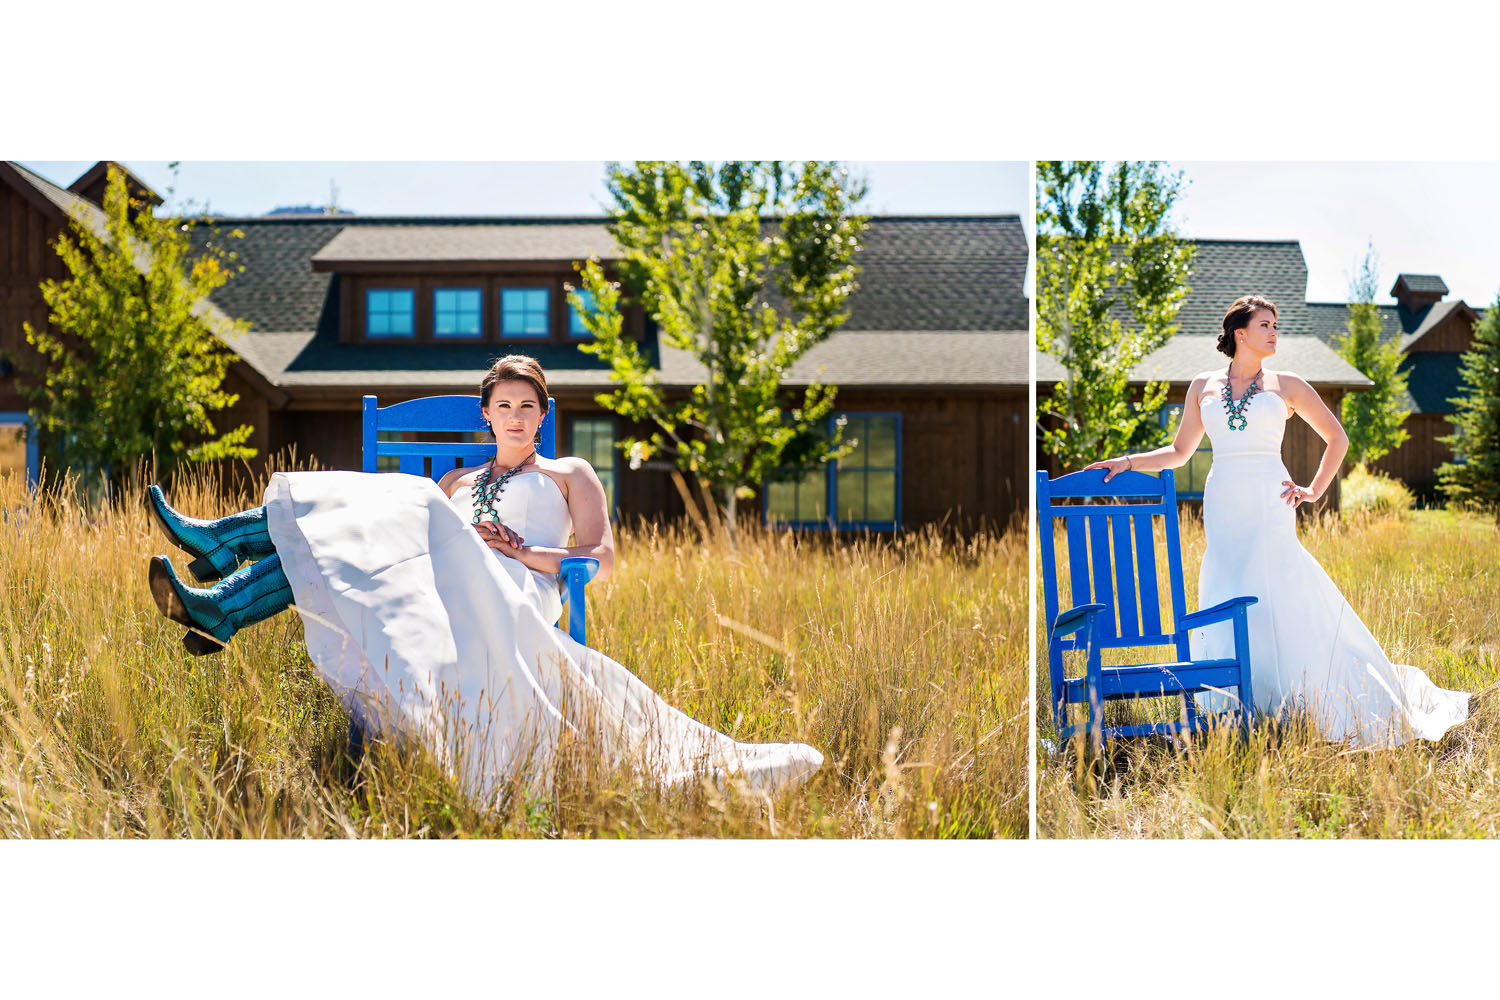 Hanna_Jesse_2015_Wedding_Album_APPROVED_DESING_AWAITING_RETOUCHING_08.jpg